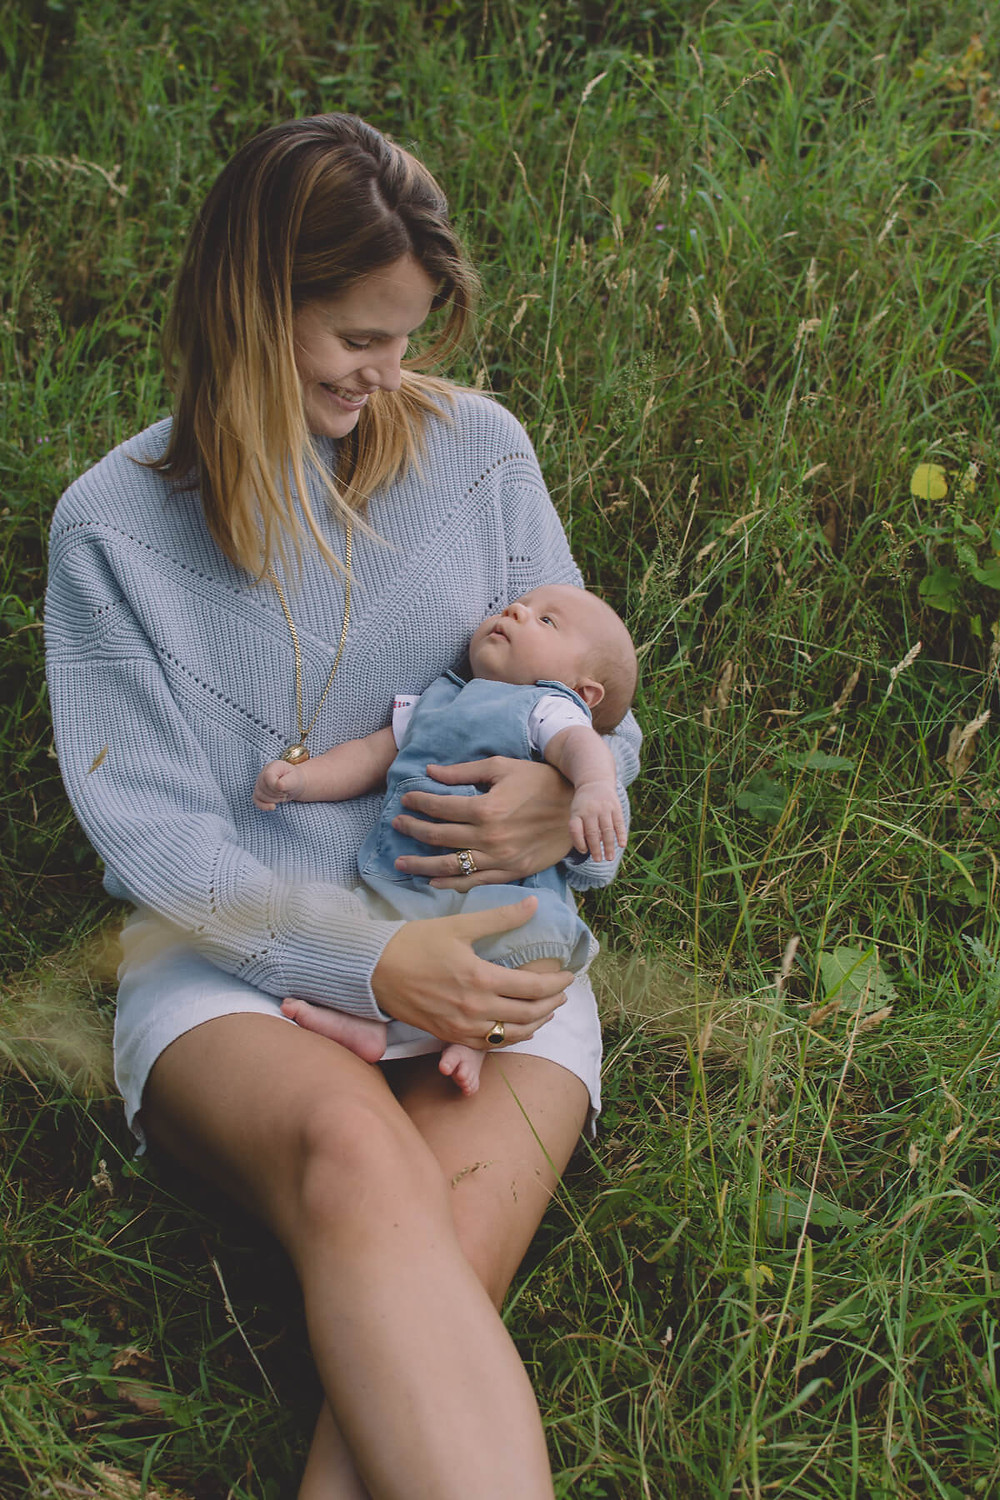 young mother sitting in grass smiling down on newborn baby